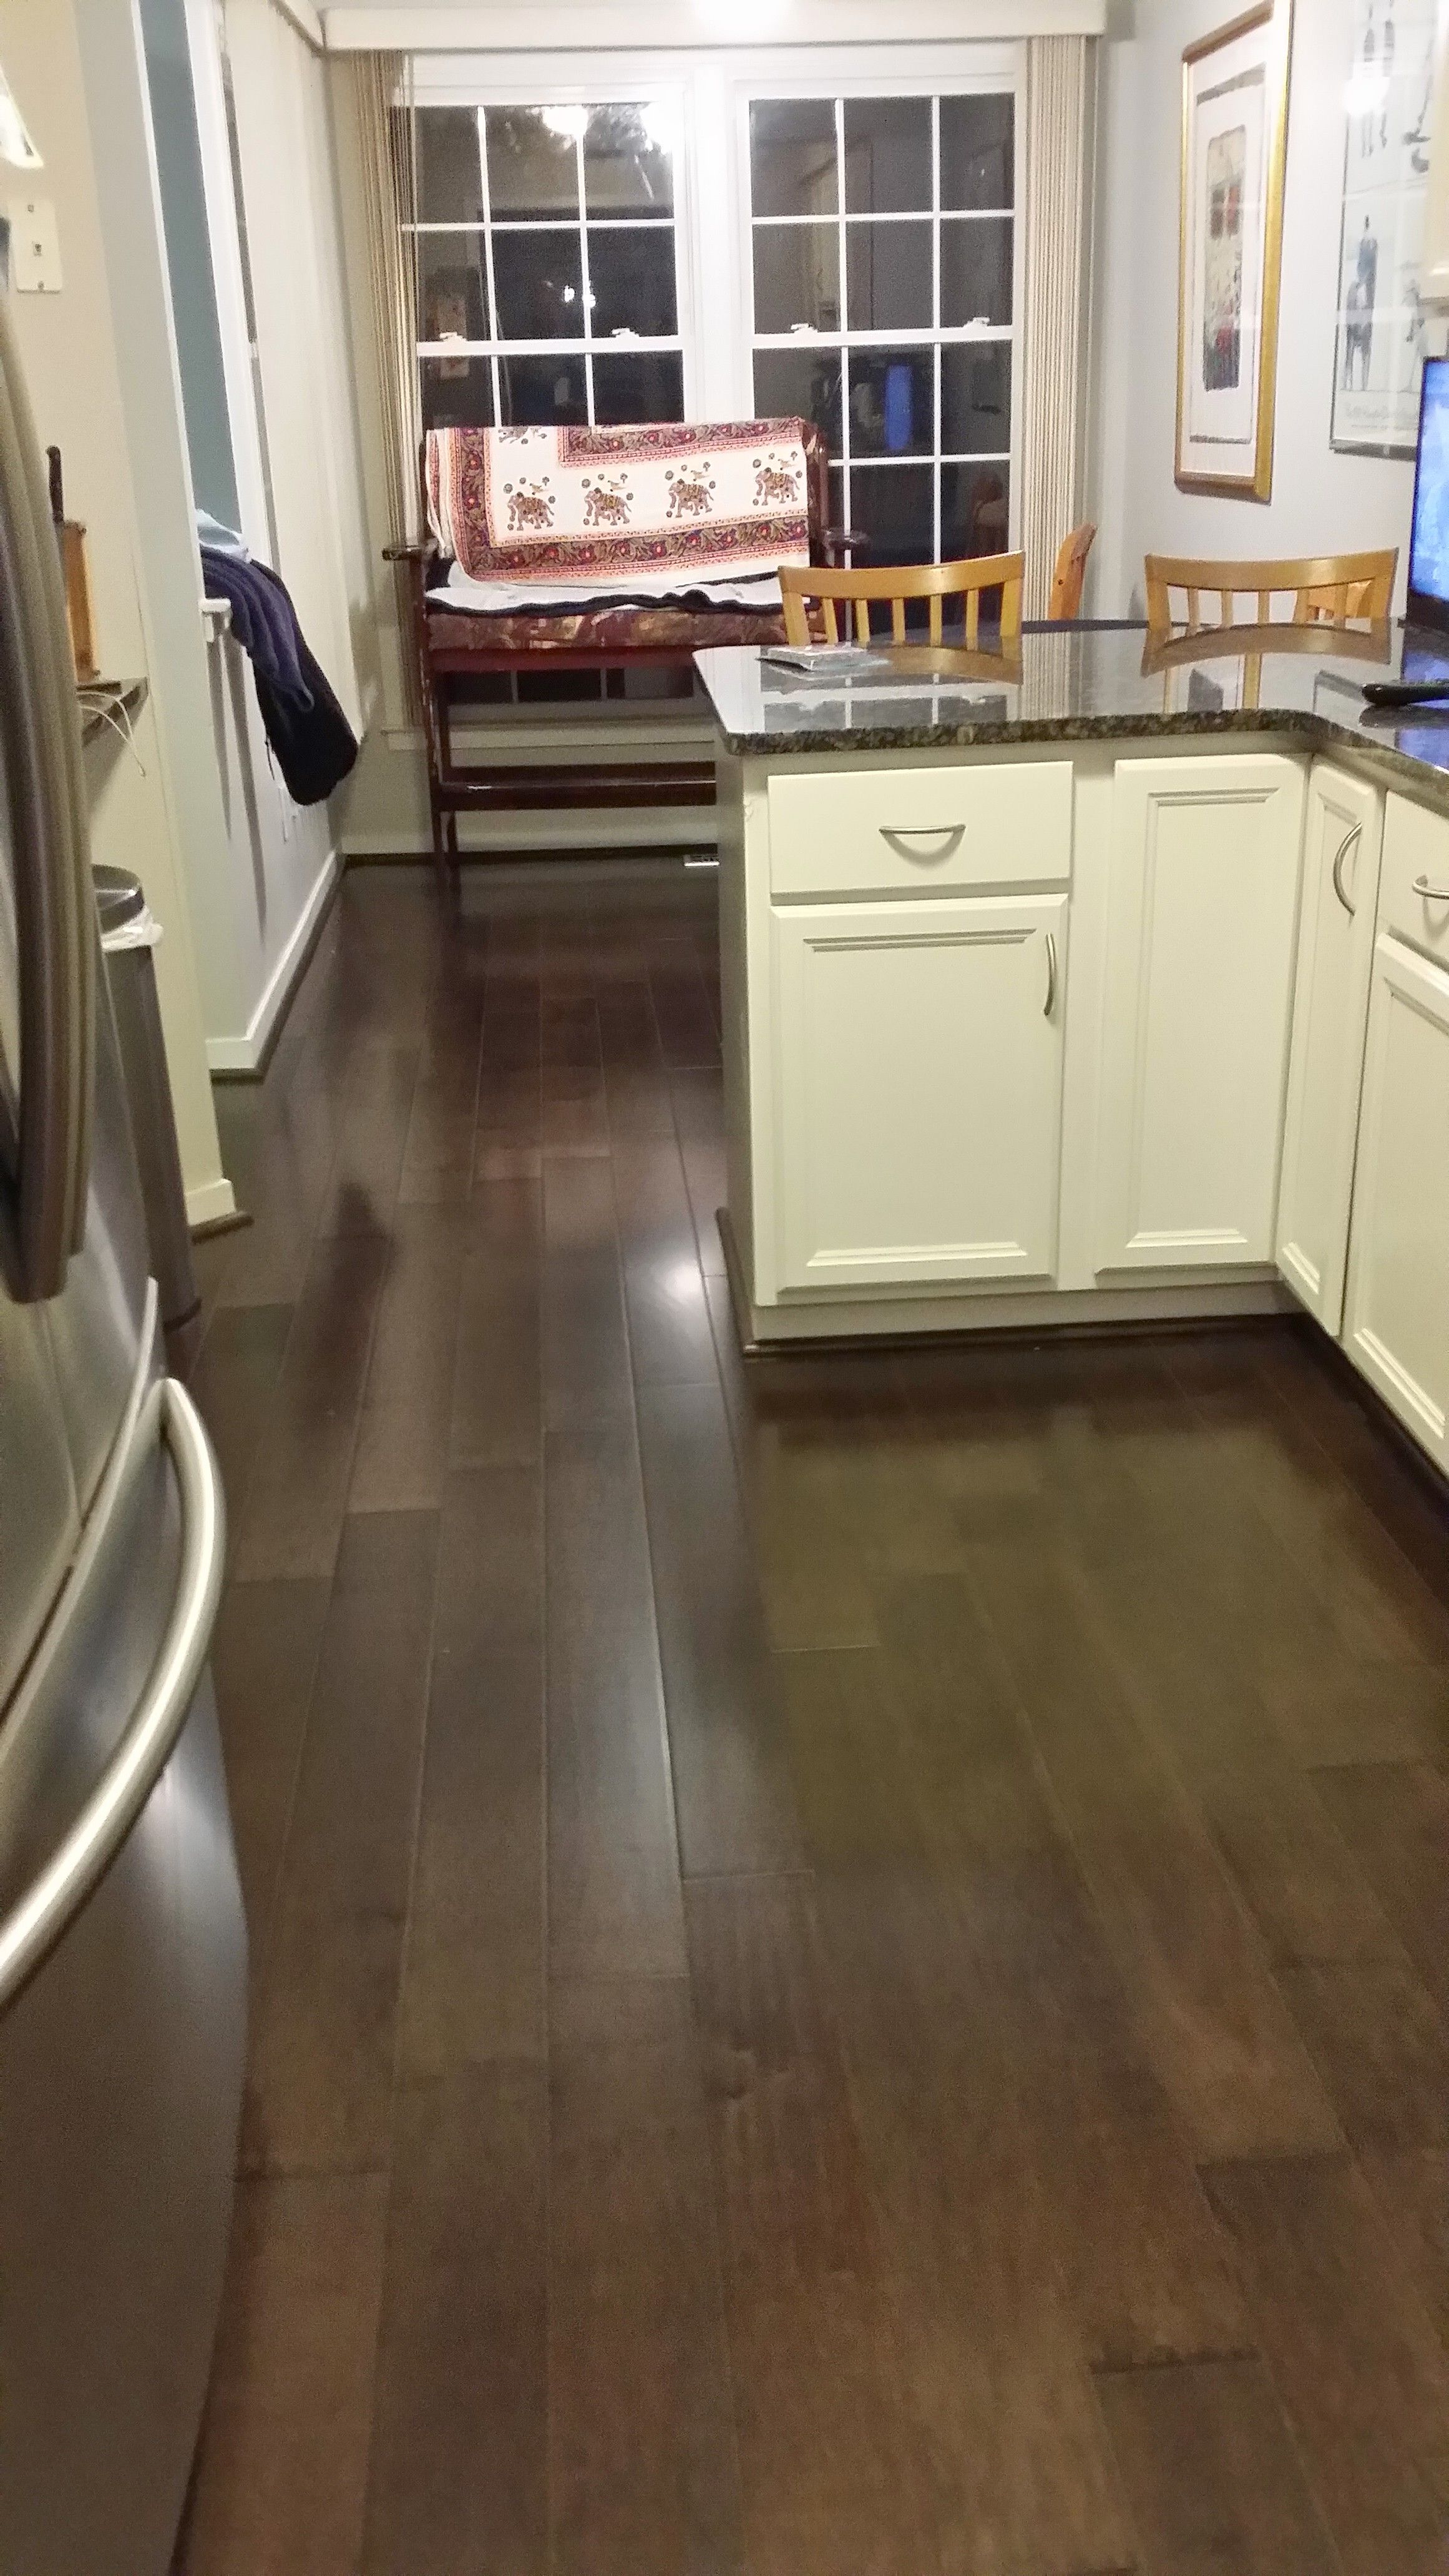 Maple Flooring | Home depot cabinets, Glass subway tile ...